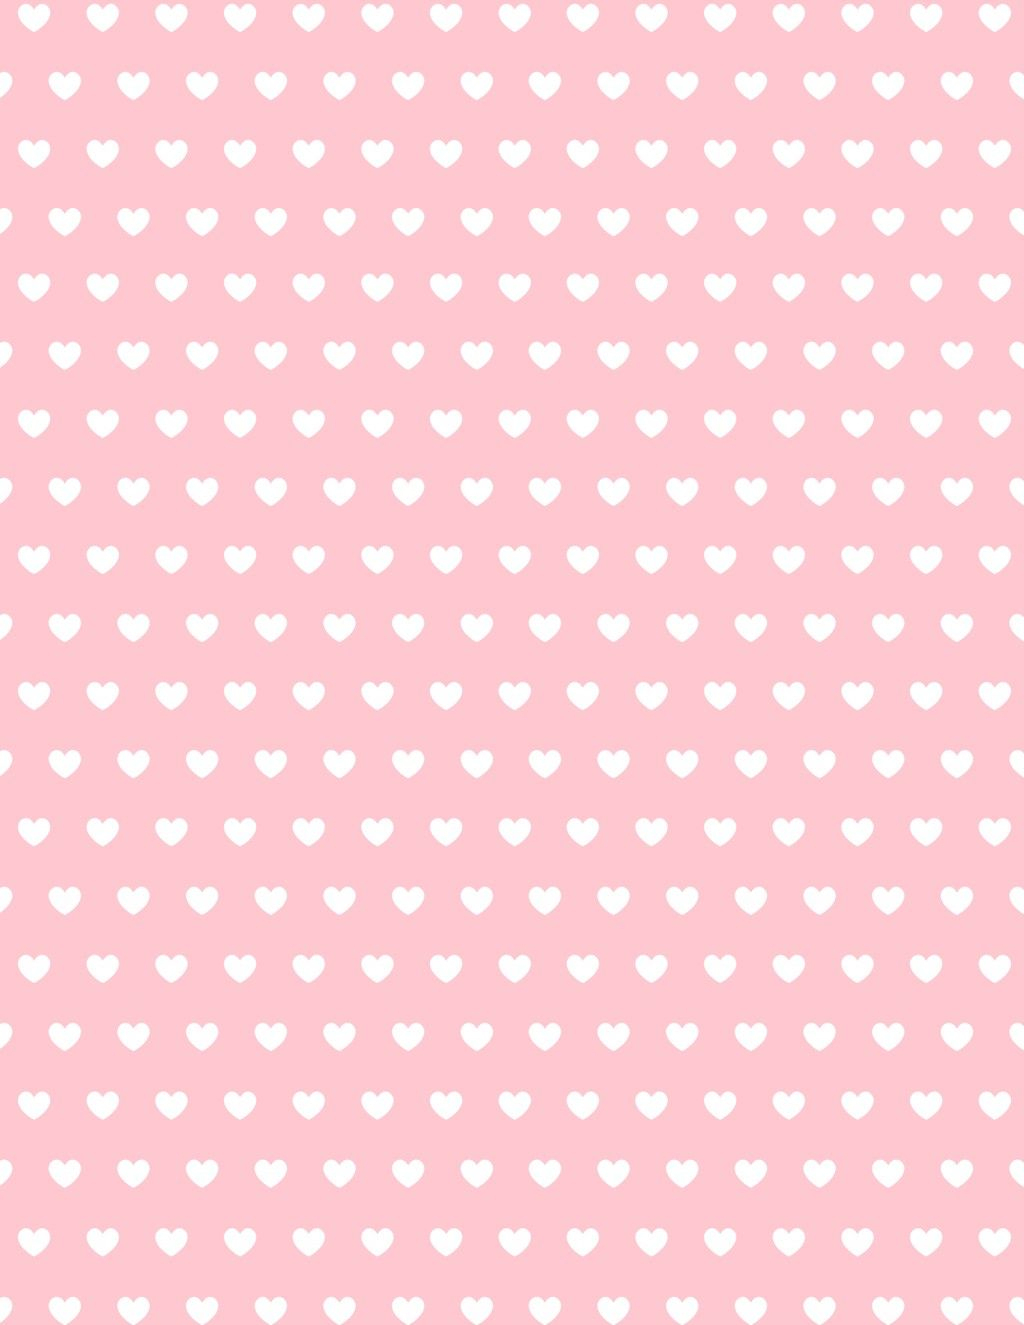 Free Valentine Hearts Scrapbook Paper | Perfect Student - Free Printable Scrapbook Paper Designs